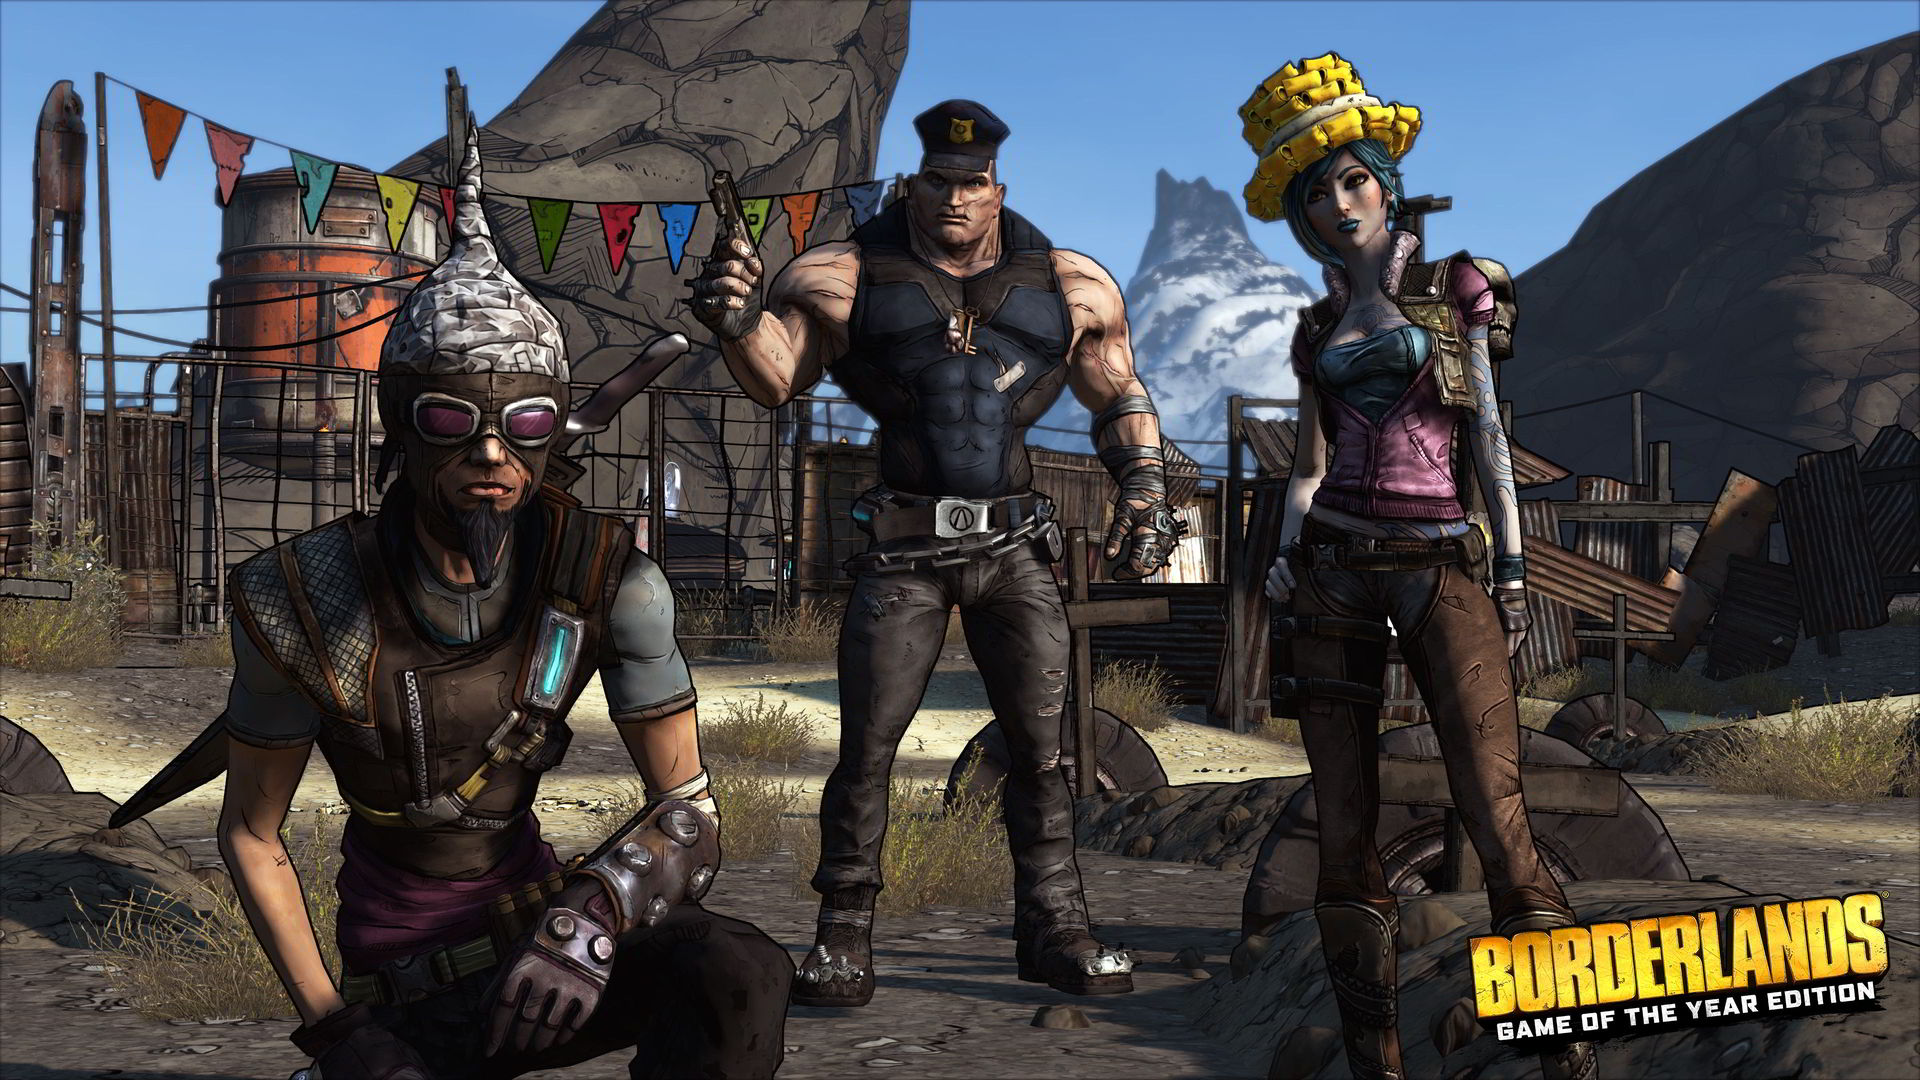 Borderlands Game of the Year Edition giochi in uscita